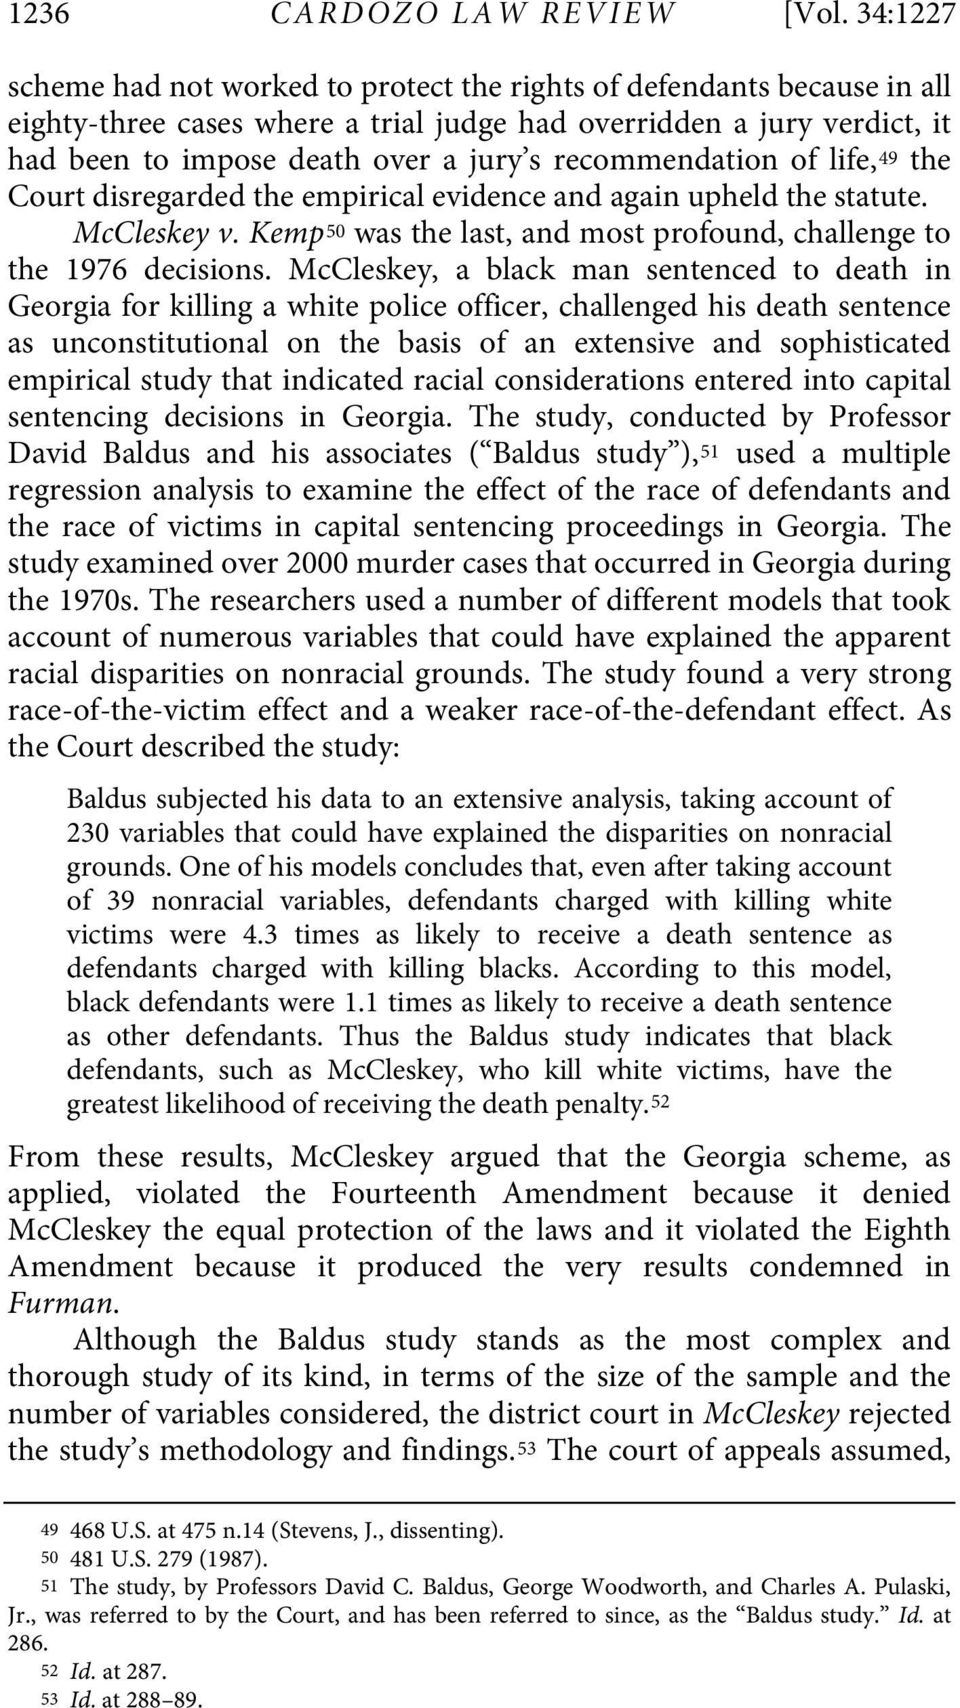 recommendation of life, 49 the Court disregarded the empirical evidence and again upheld the statute. McCleskey v. Kemp 50 was the last, and most profound, challenge to the 1976 decisions.